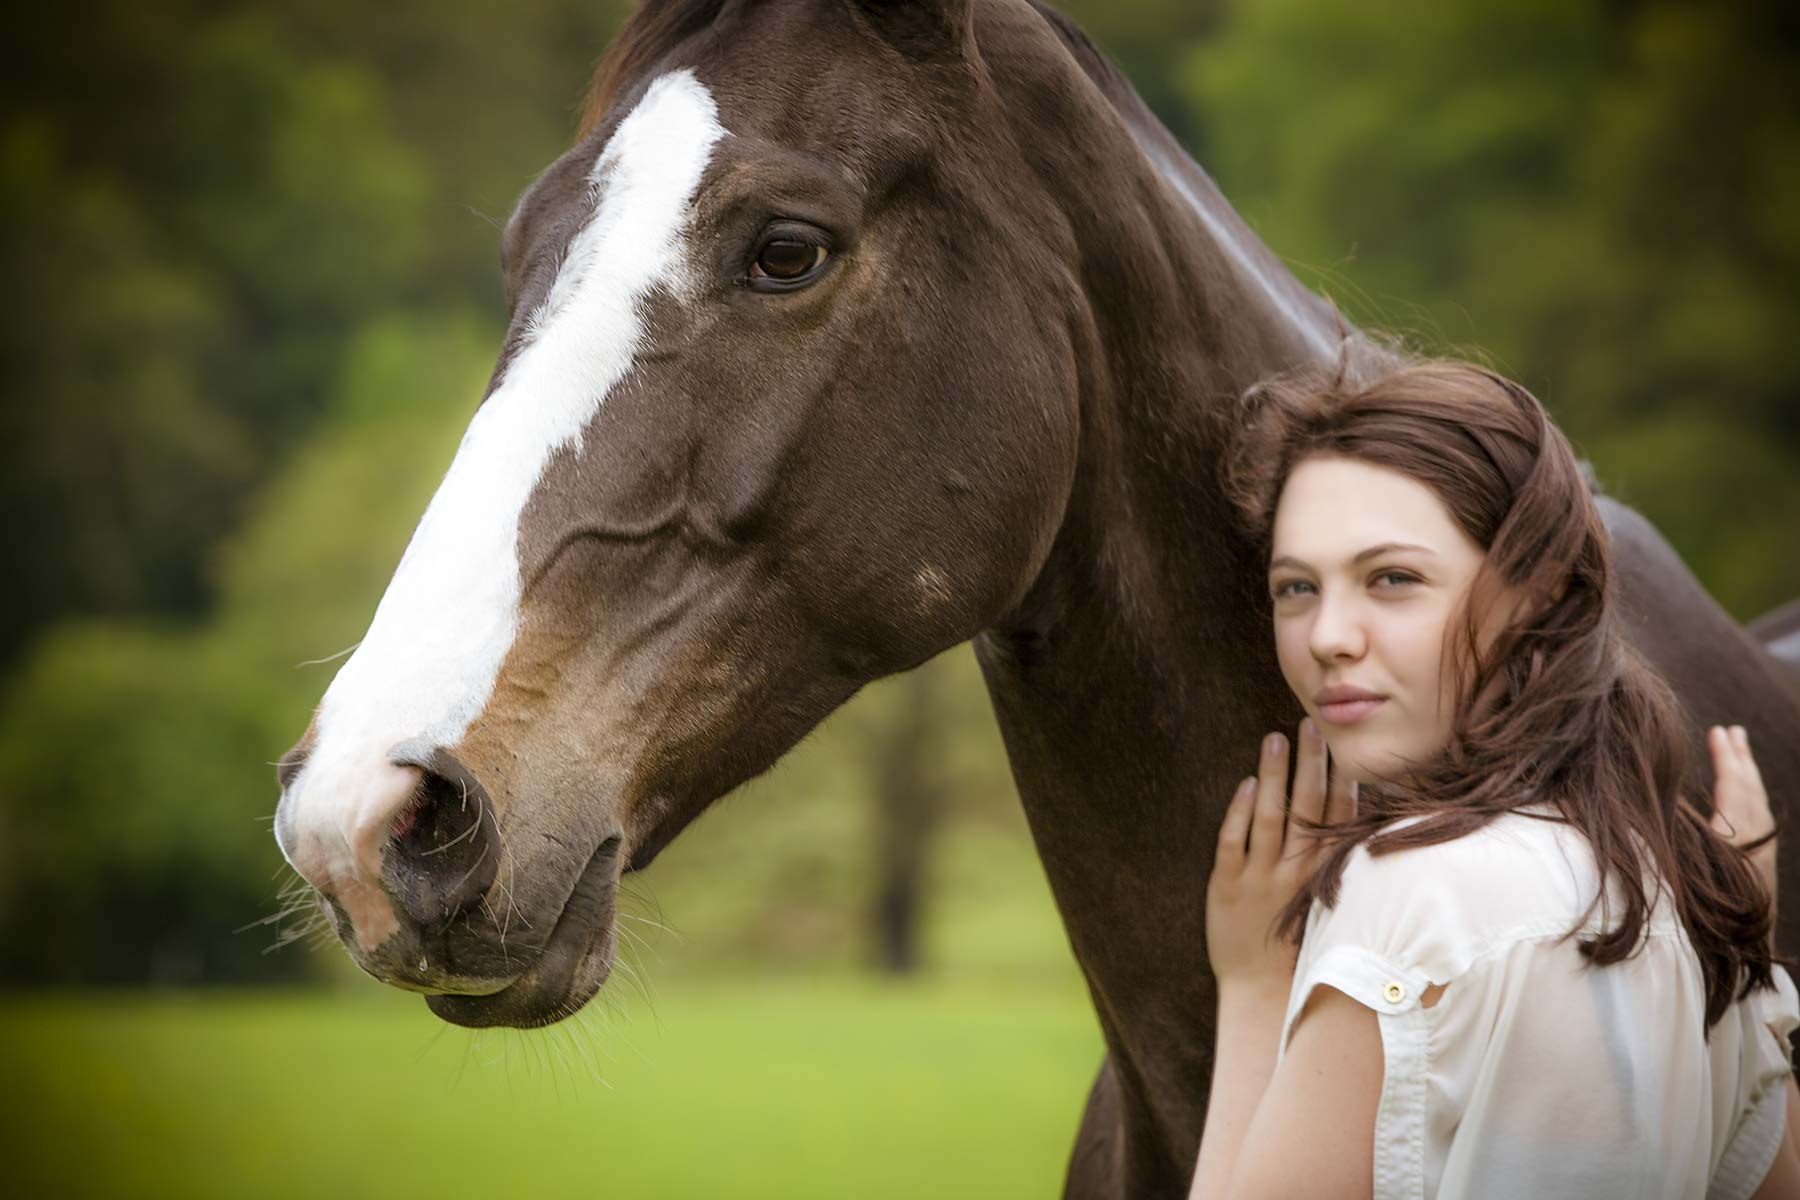 http://robpowellphotography.com/Photos/HORSEPLAY-PHOTOGRAPHY/IMG_3714-Edit.jpg'